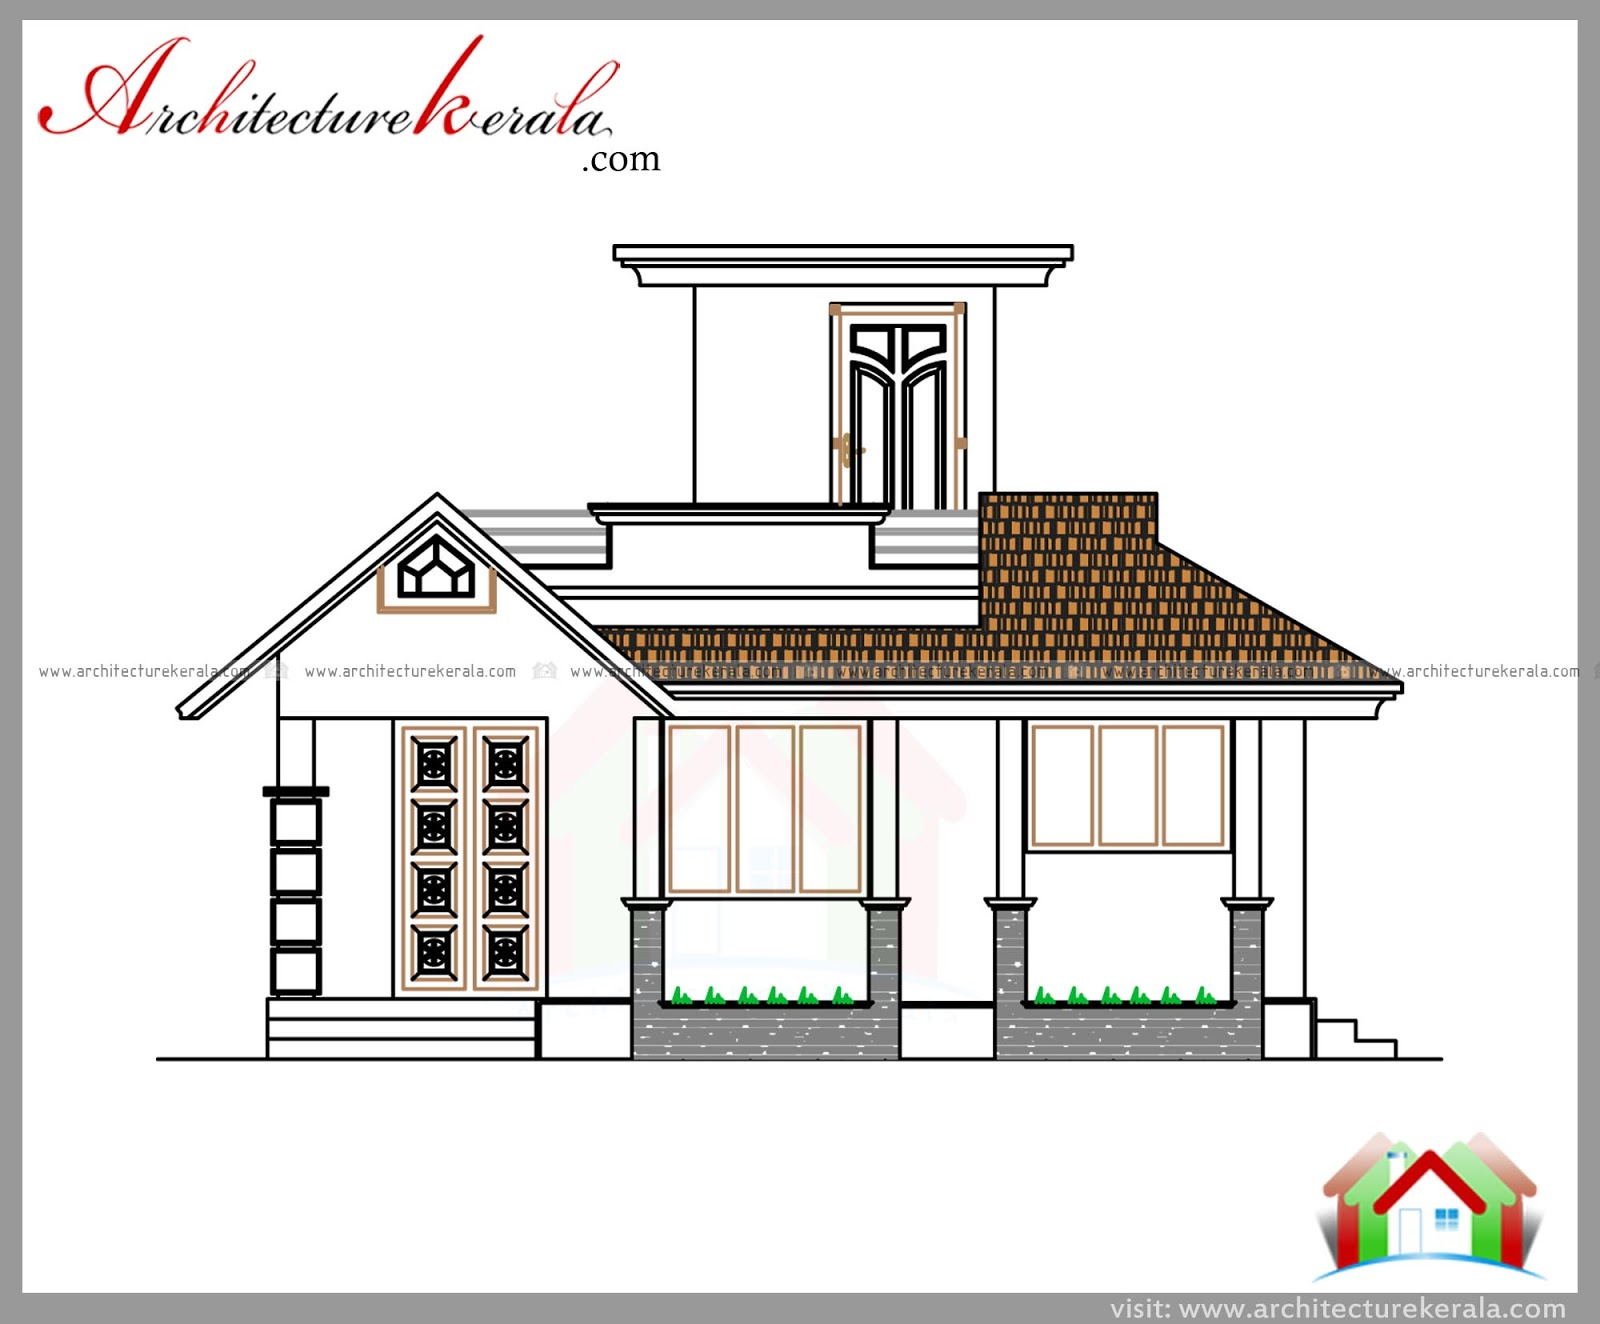 2 bedroom house estimate cost under 15 lakhs for Estimated cost building duplex